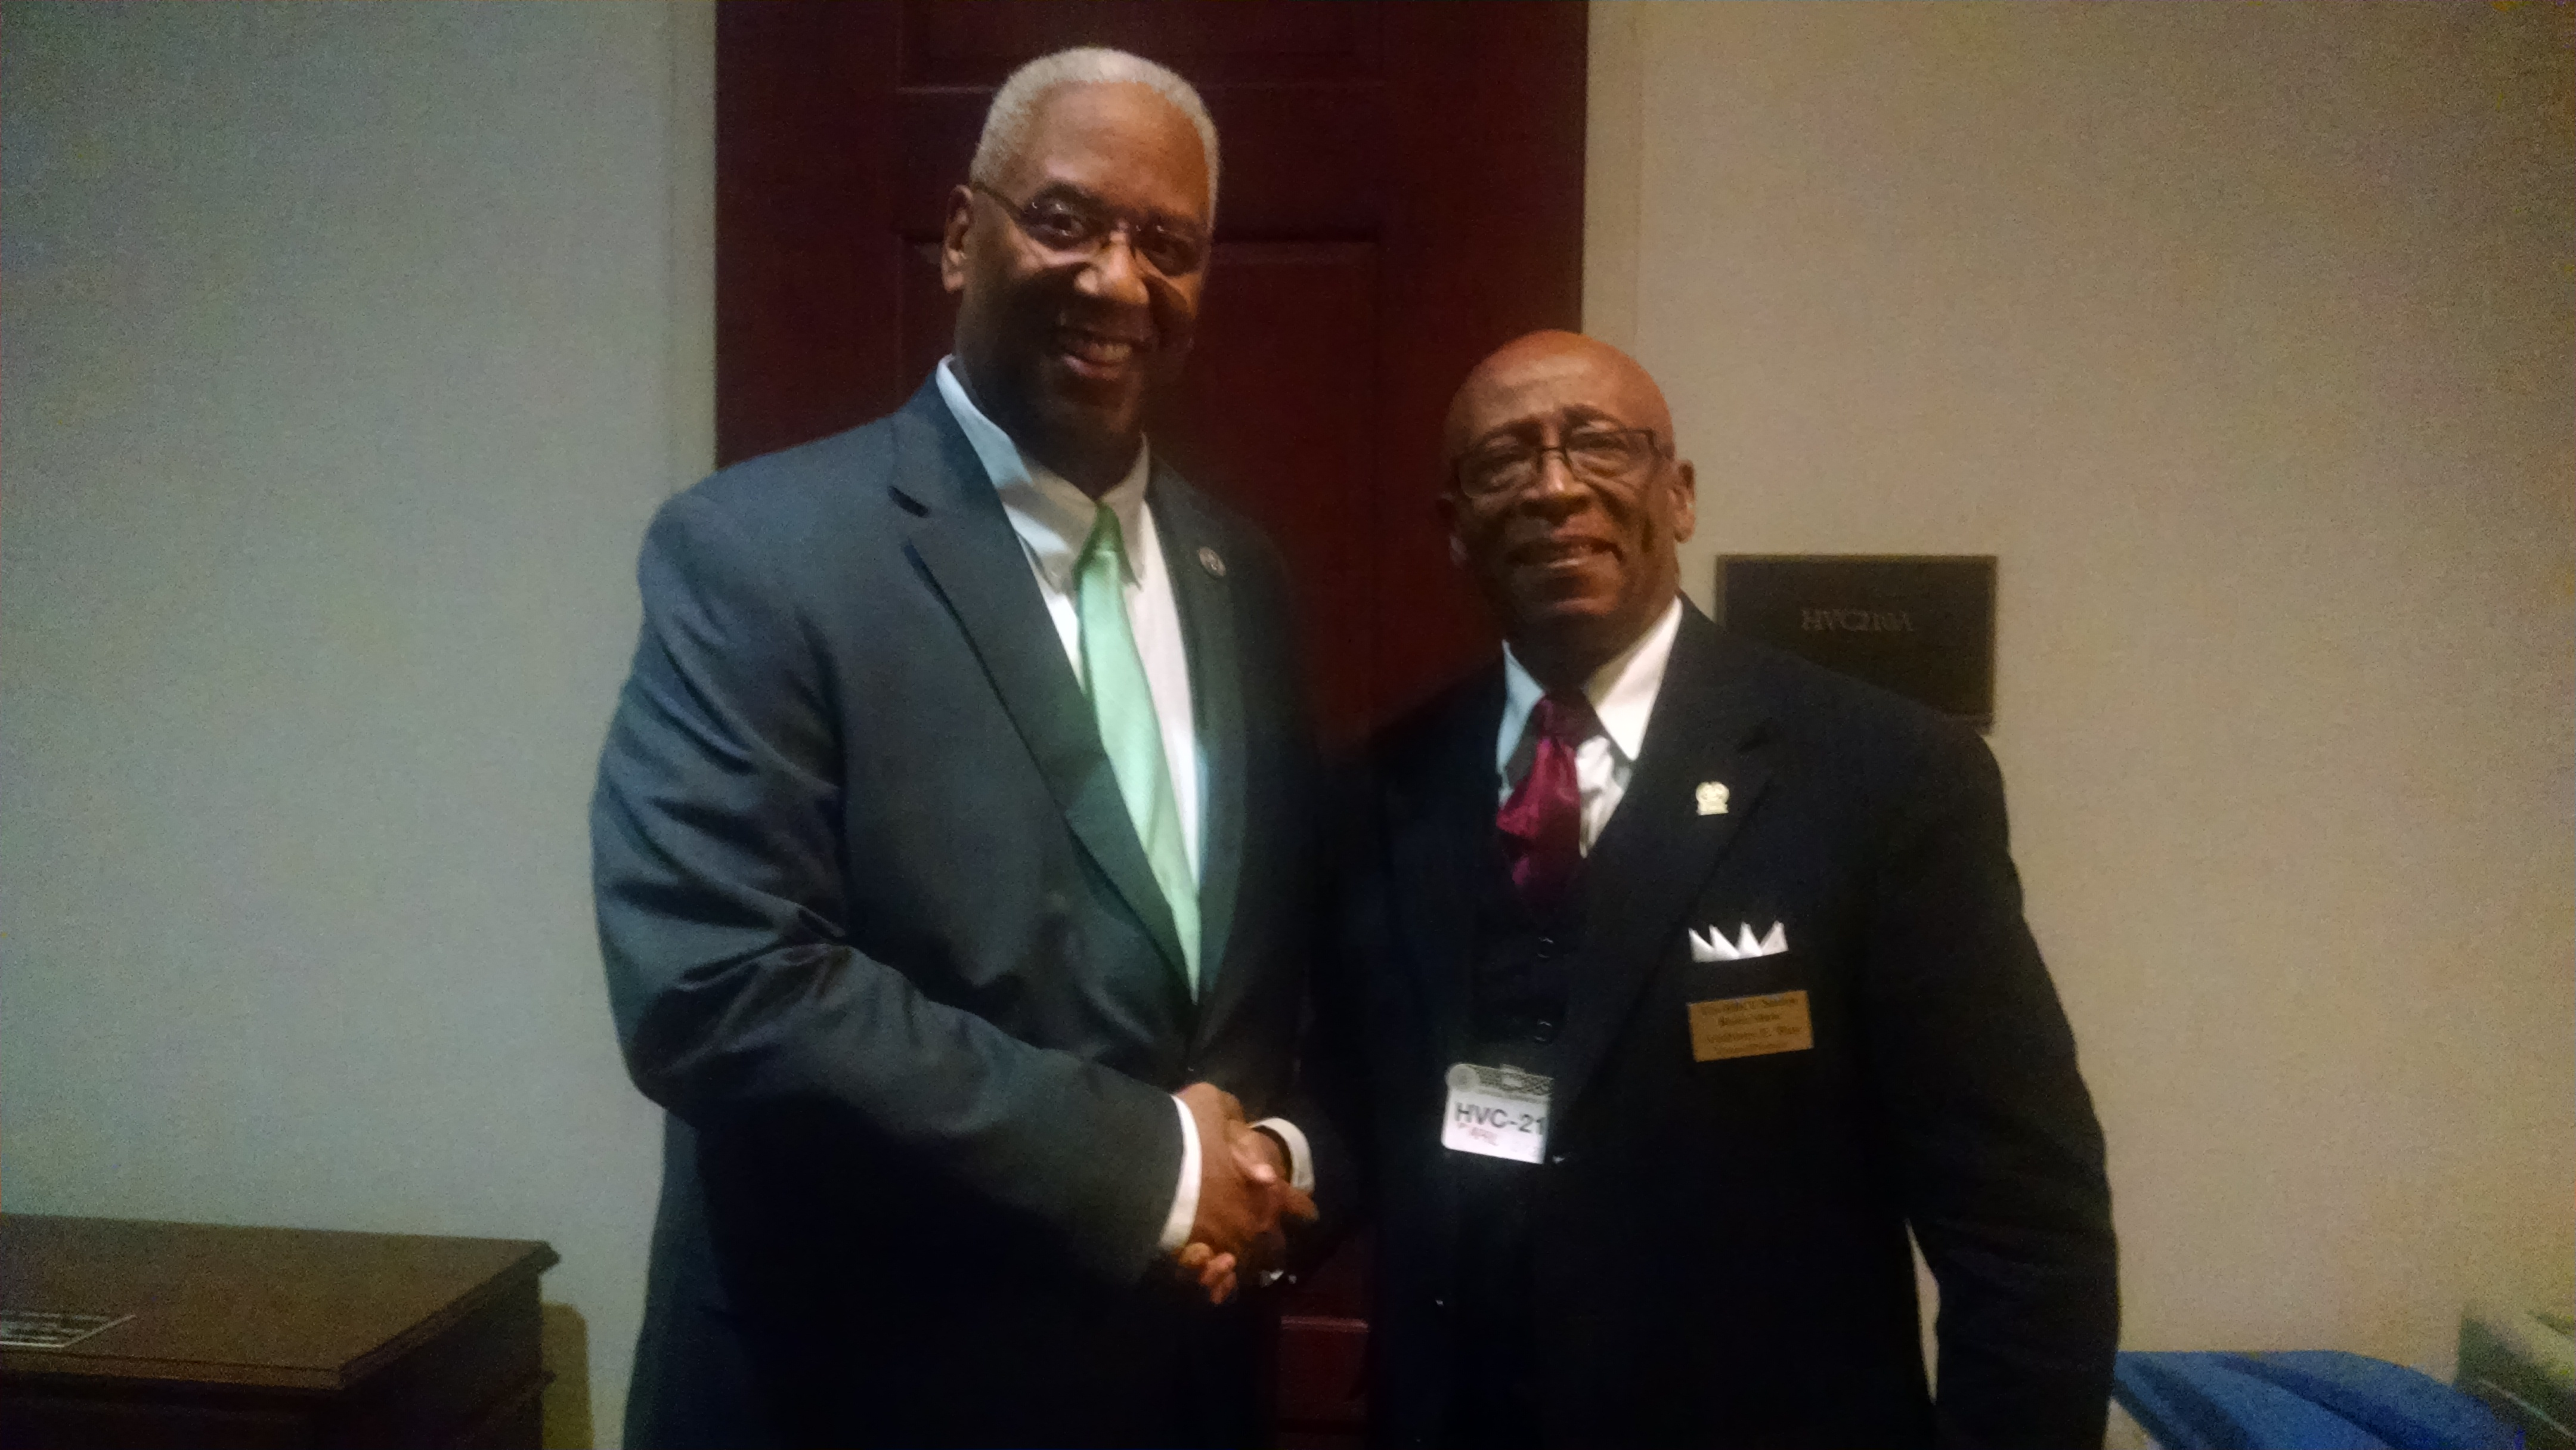 Rep. Donald McEachin and Anthony Ray